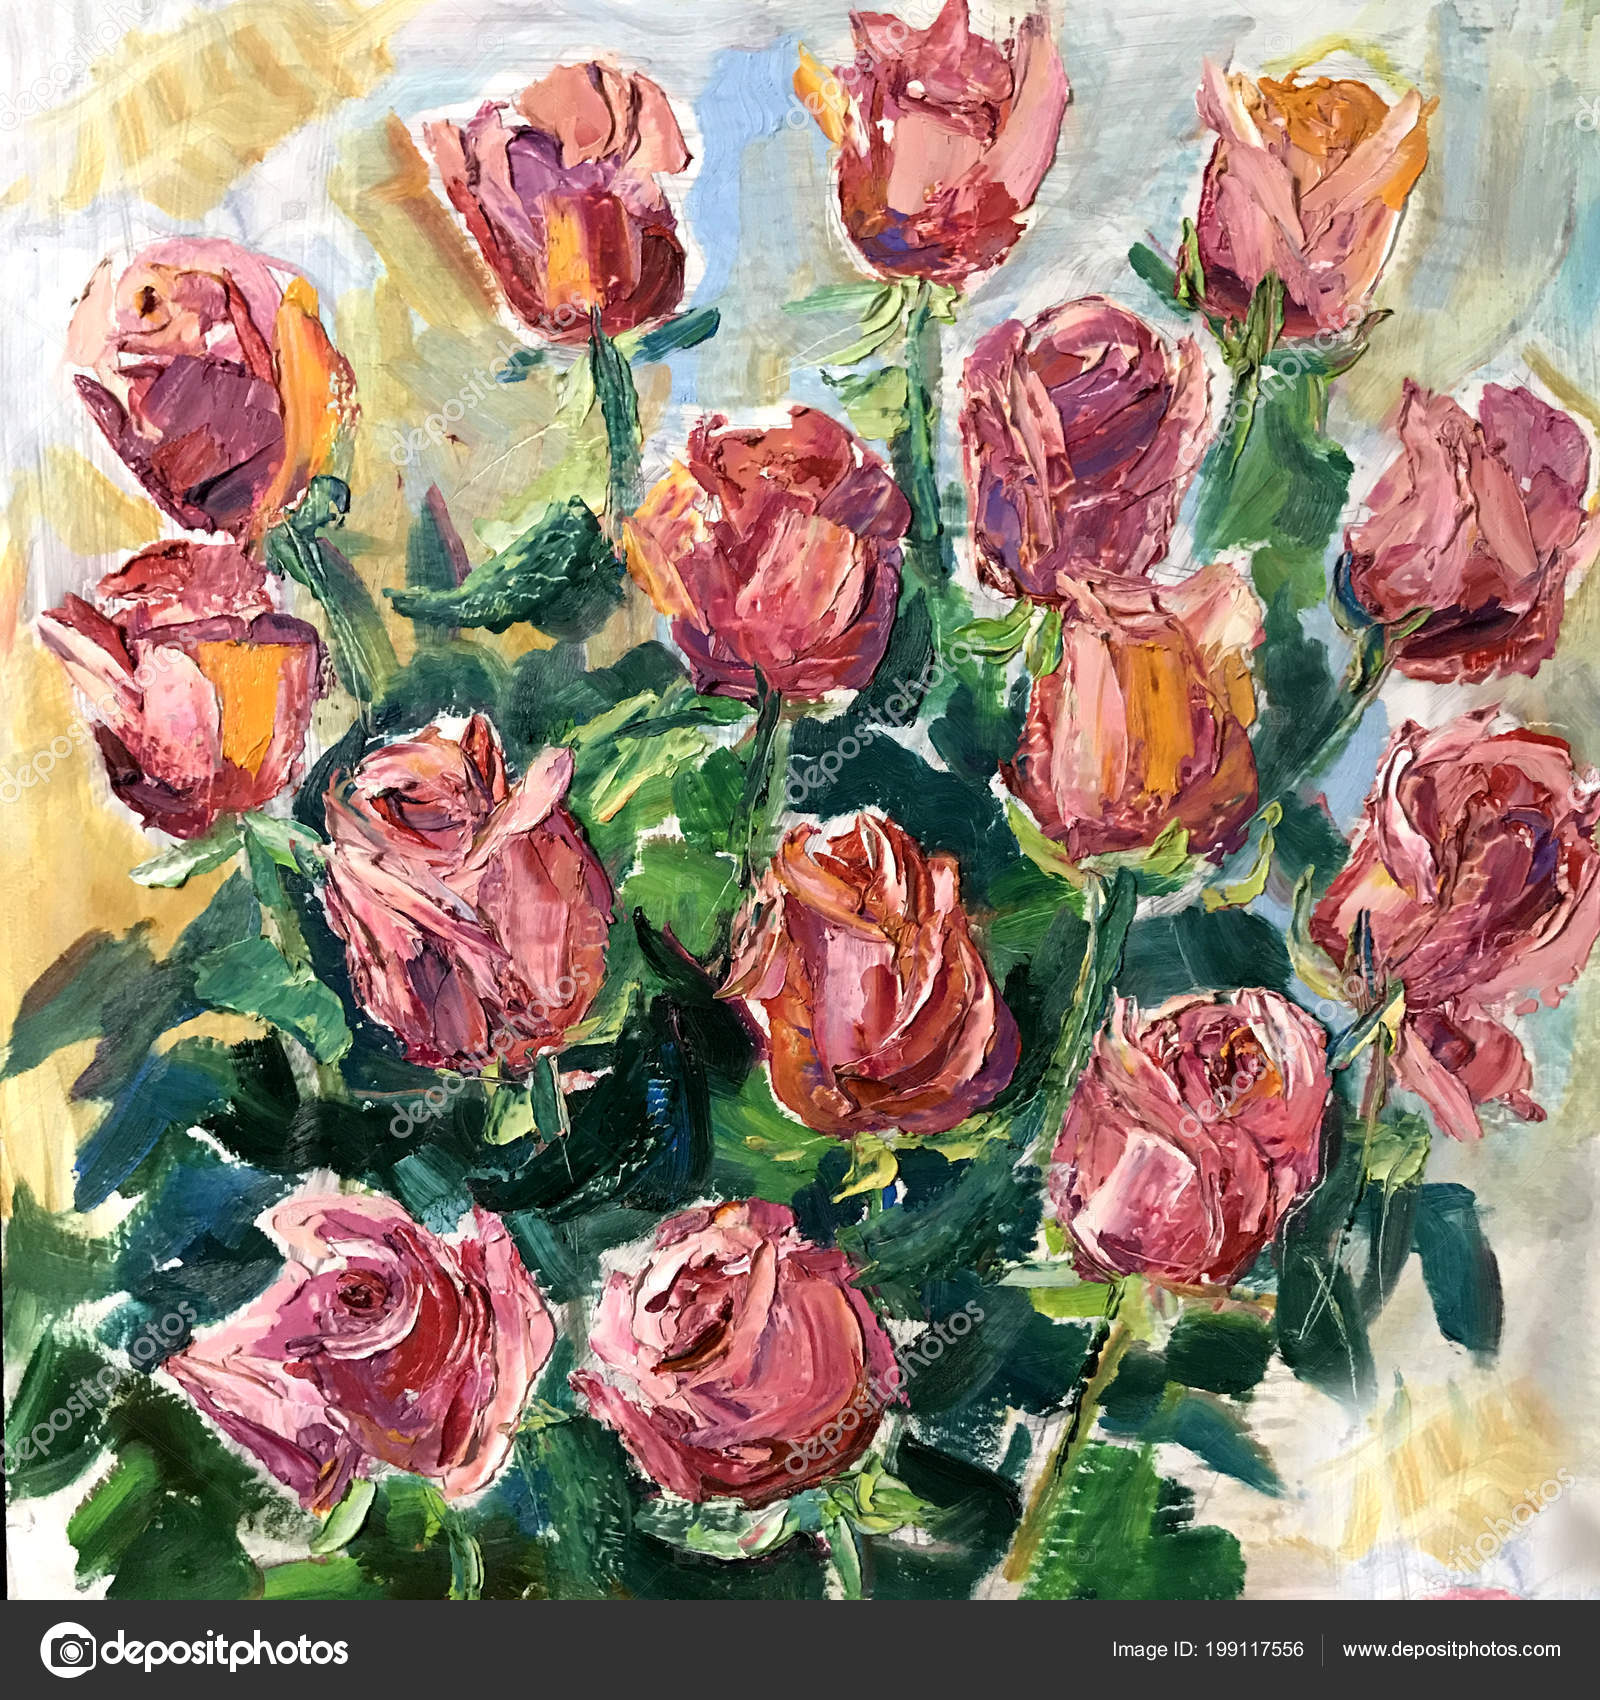 Aesthetic Flowers Drawing Drawing Pink Roses Flowers Bouquet Picture Contains Interesting Idea Evokes Stock Photo C Olgaosa 199117556